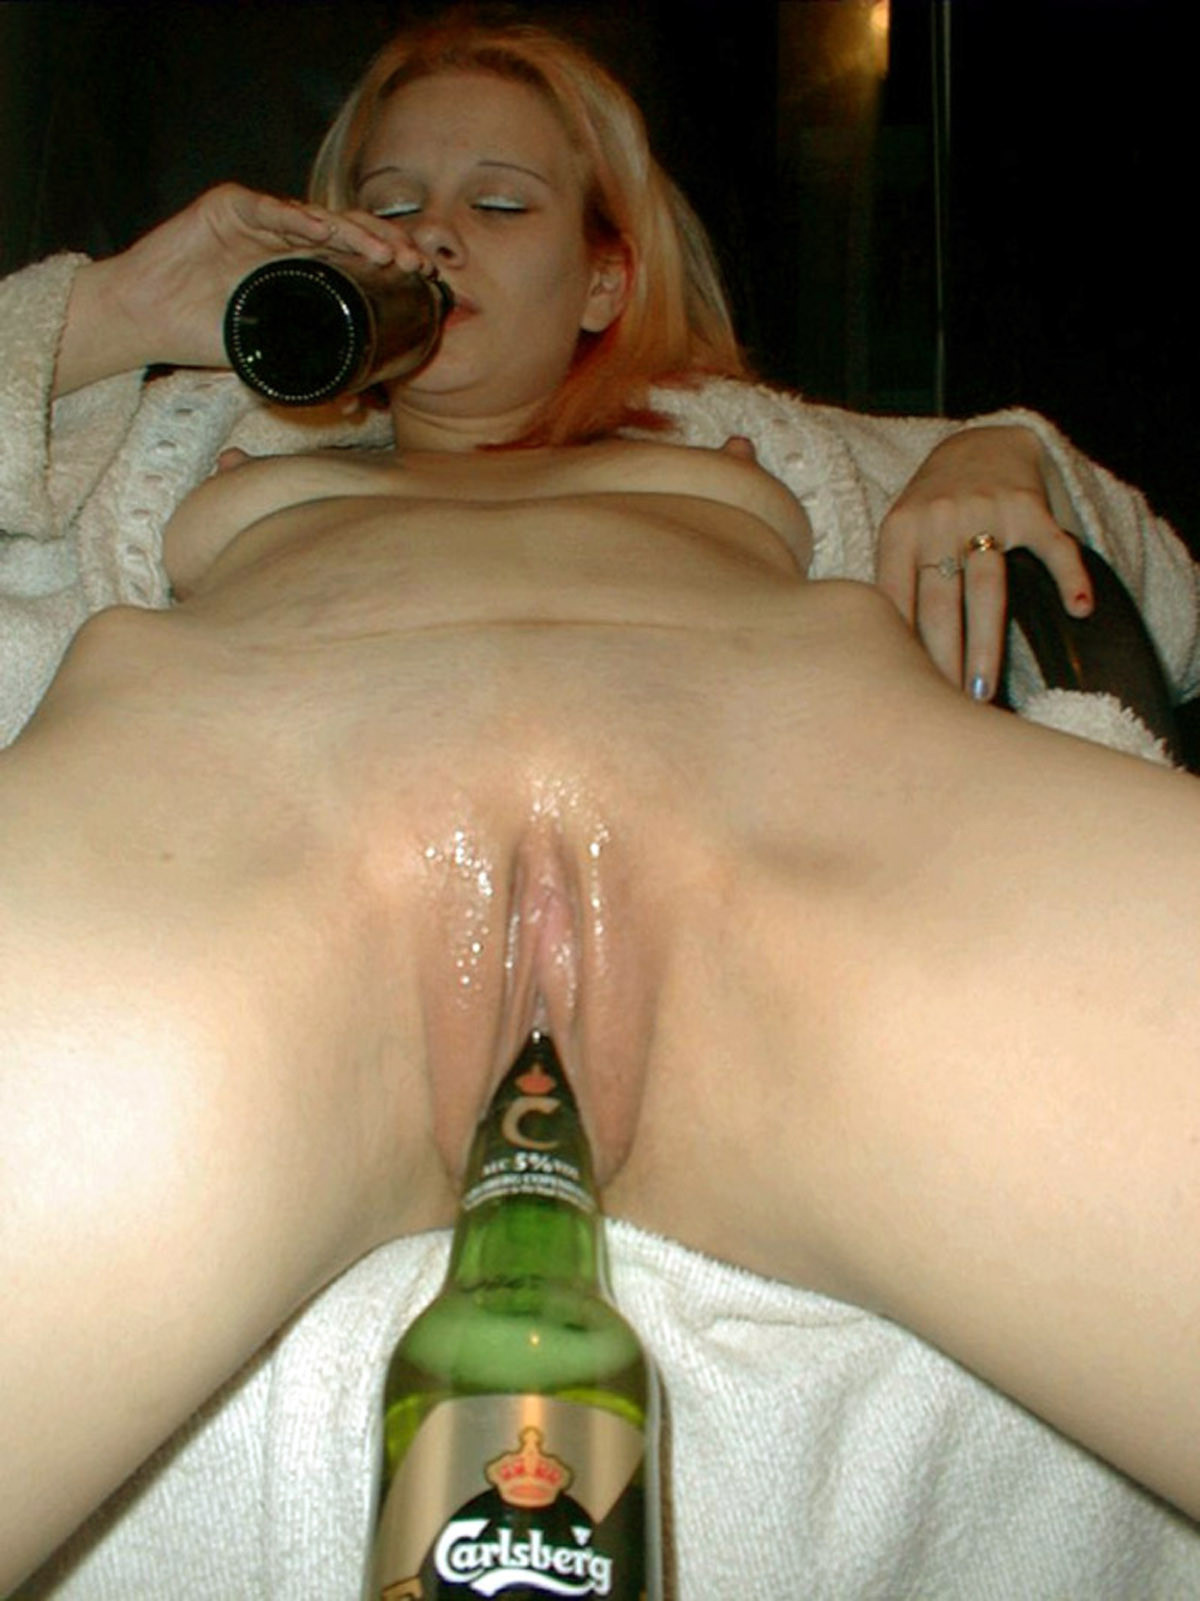 Pussy and video and beer bottle, nude pictures of bbbw